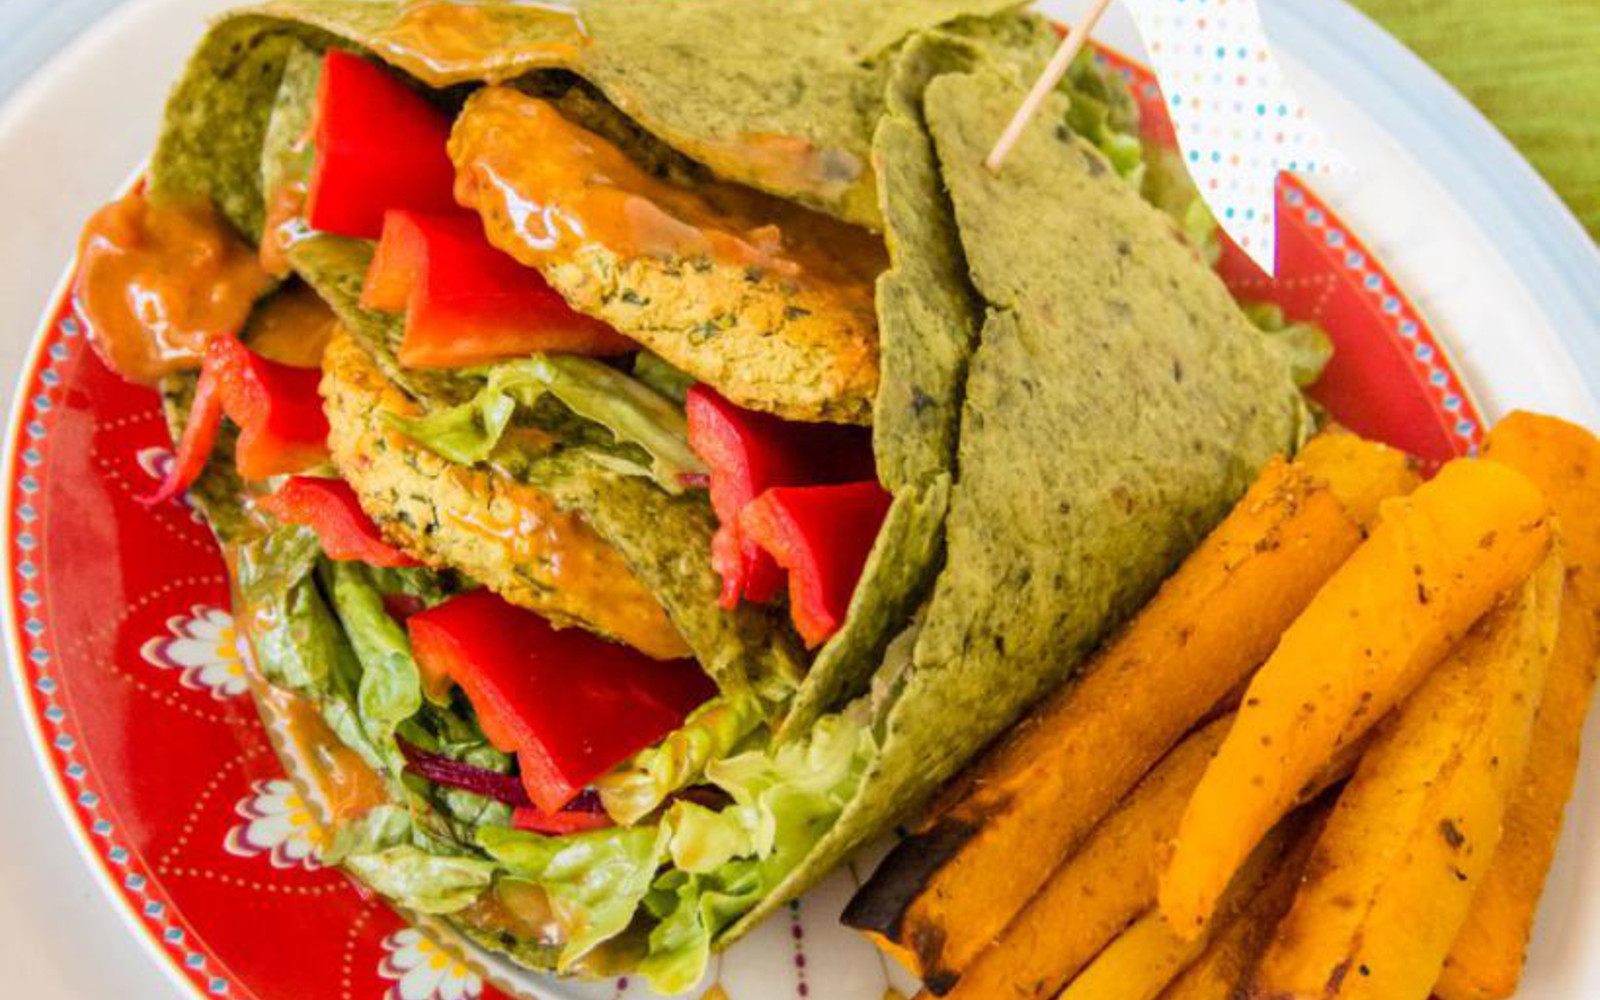 red lentil burger patty wraps